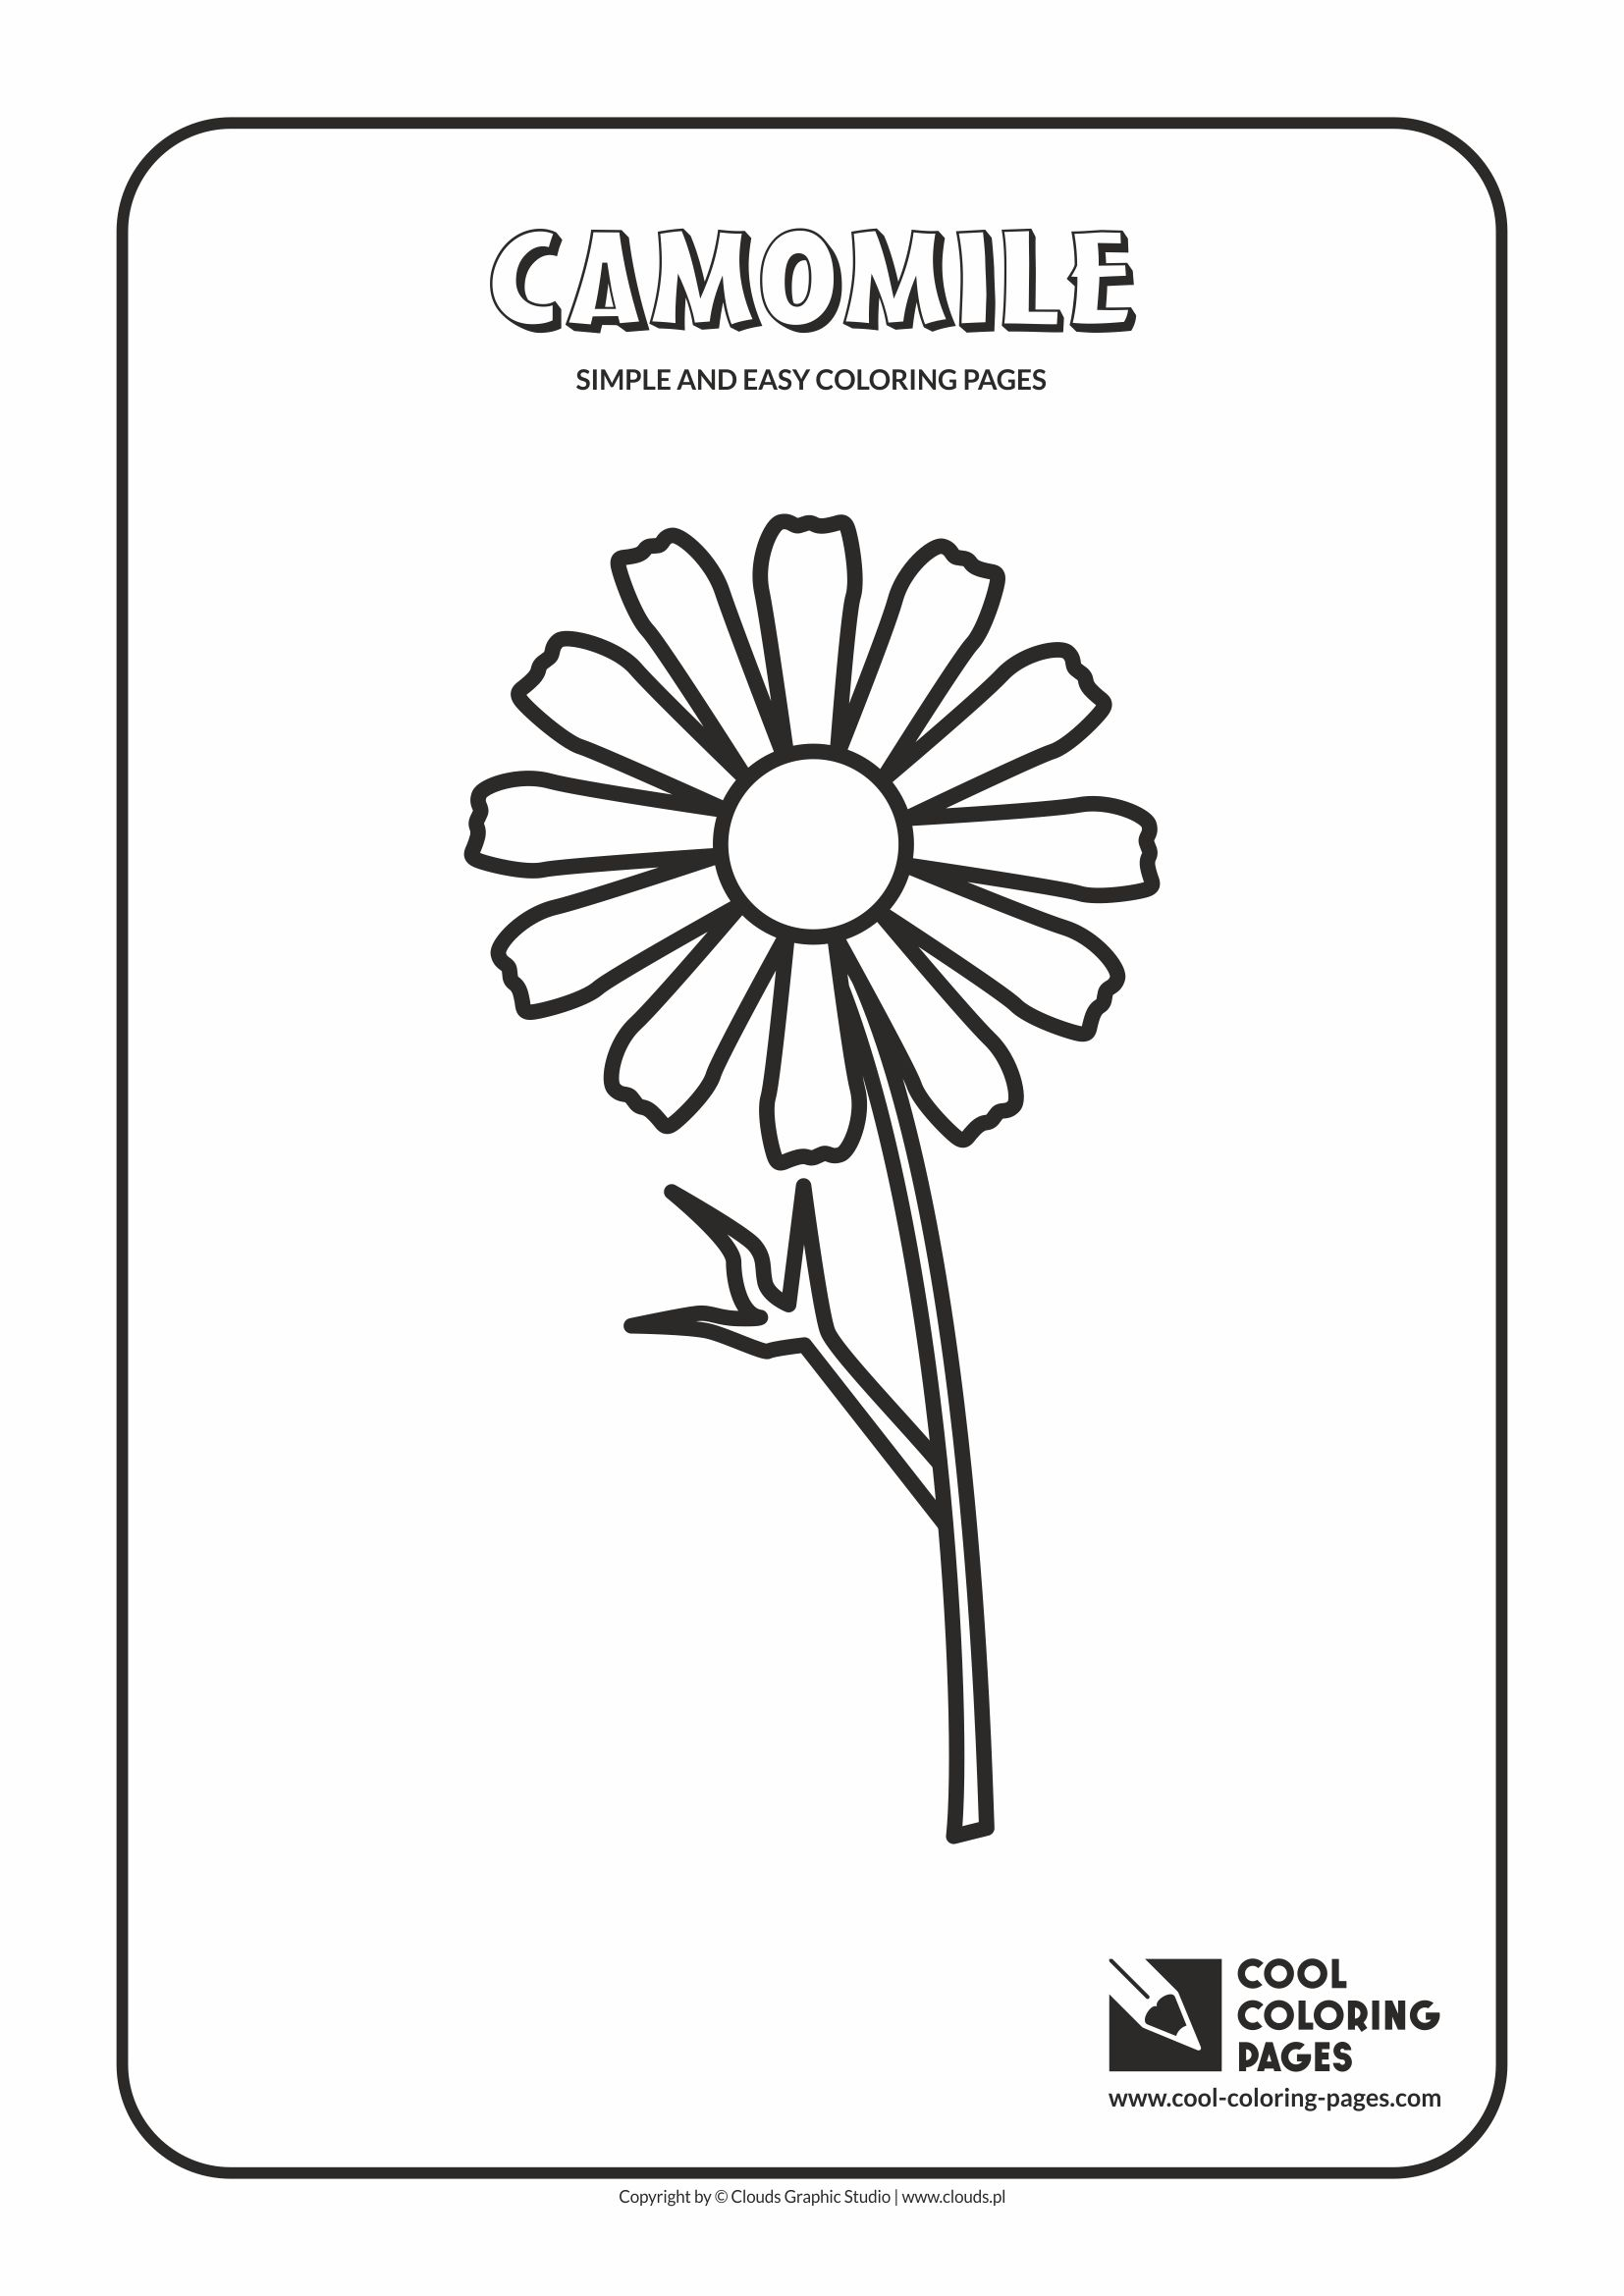 Camomile coloring #2, Download drawings